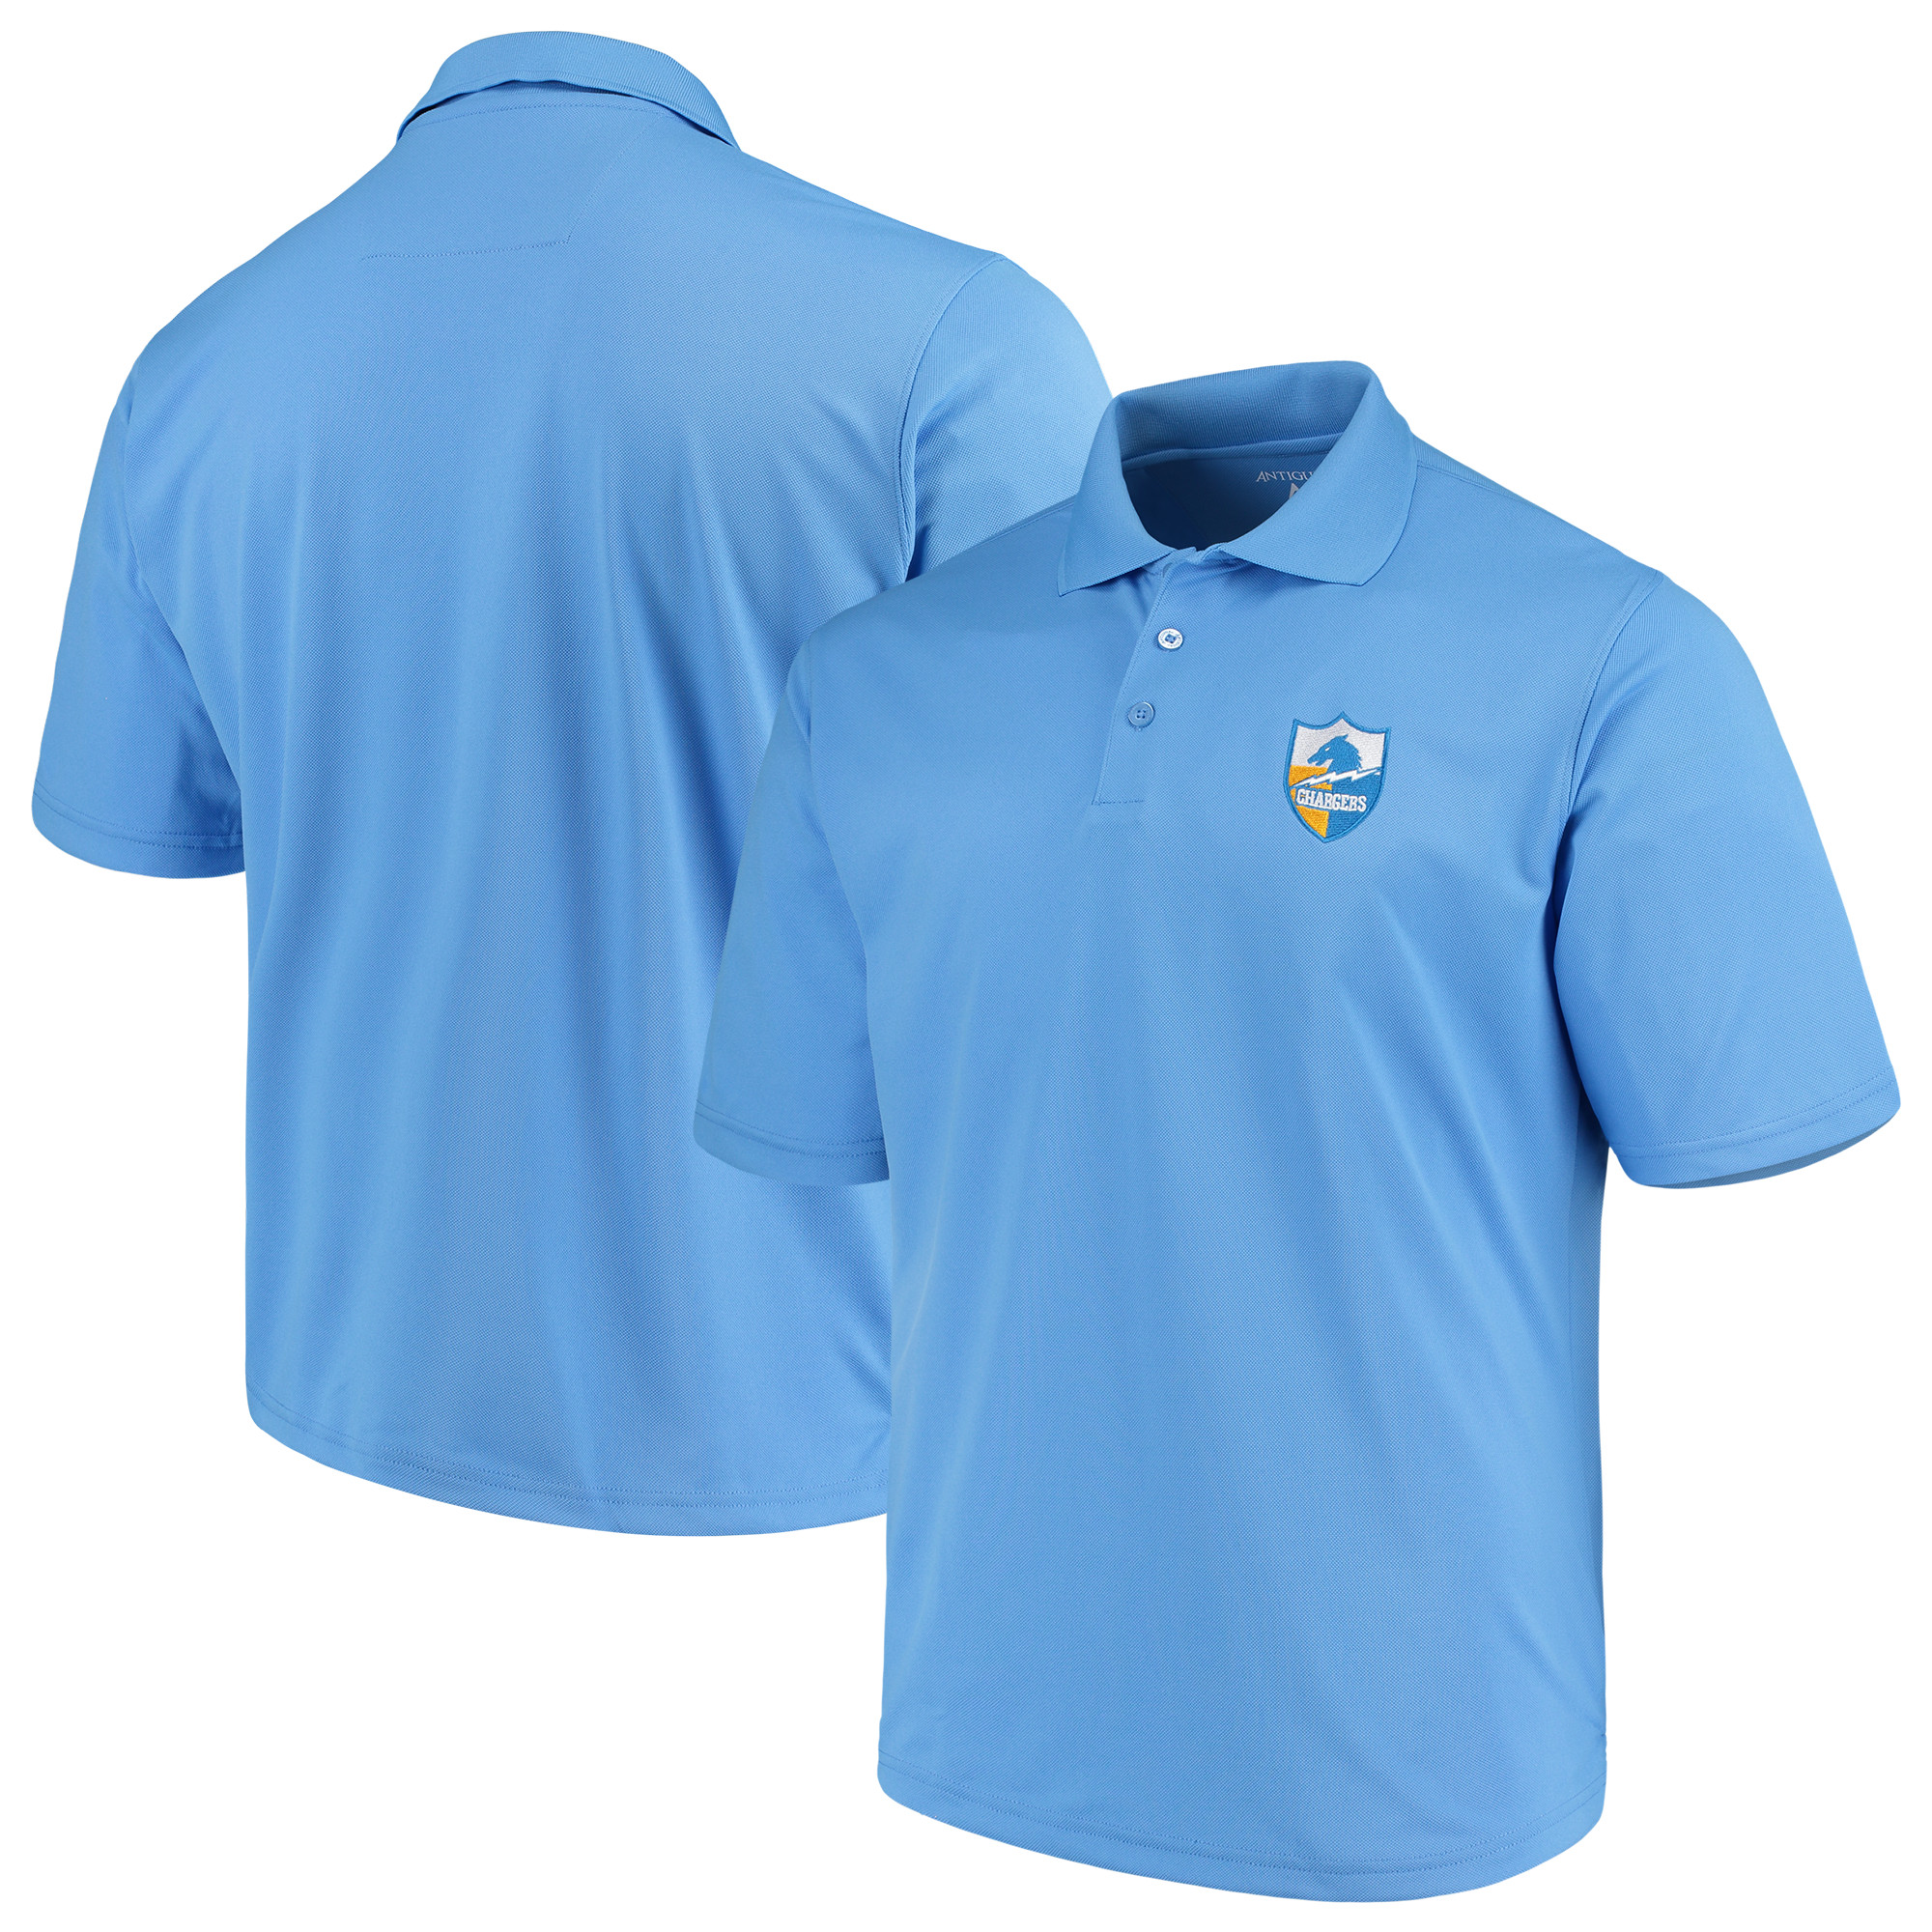 Los Angeles Chargers Antigua Throwback Pique Polo - Powder Blue